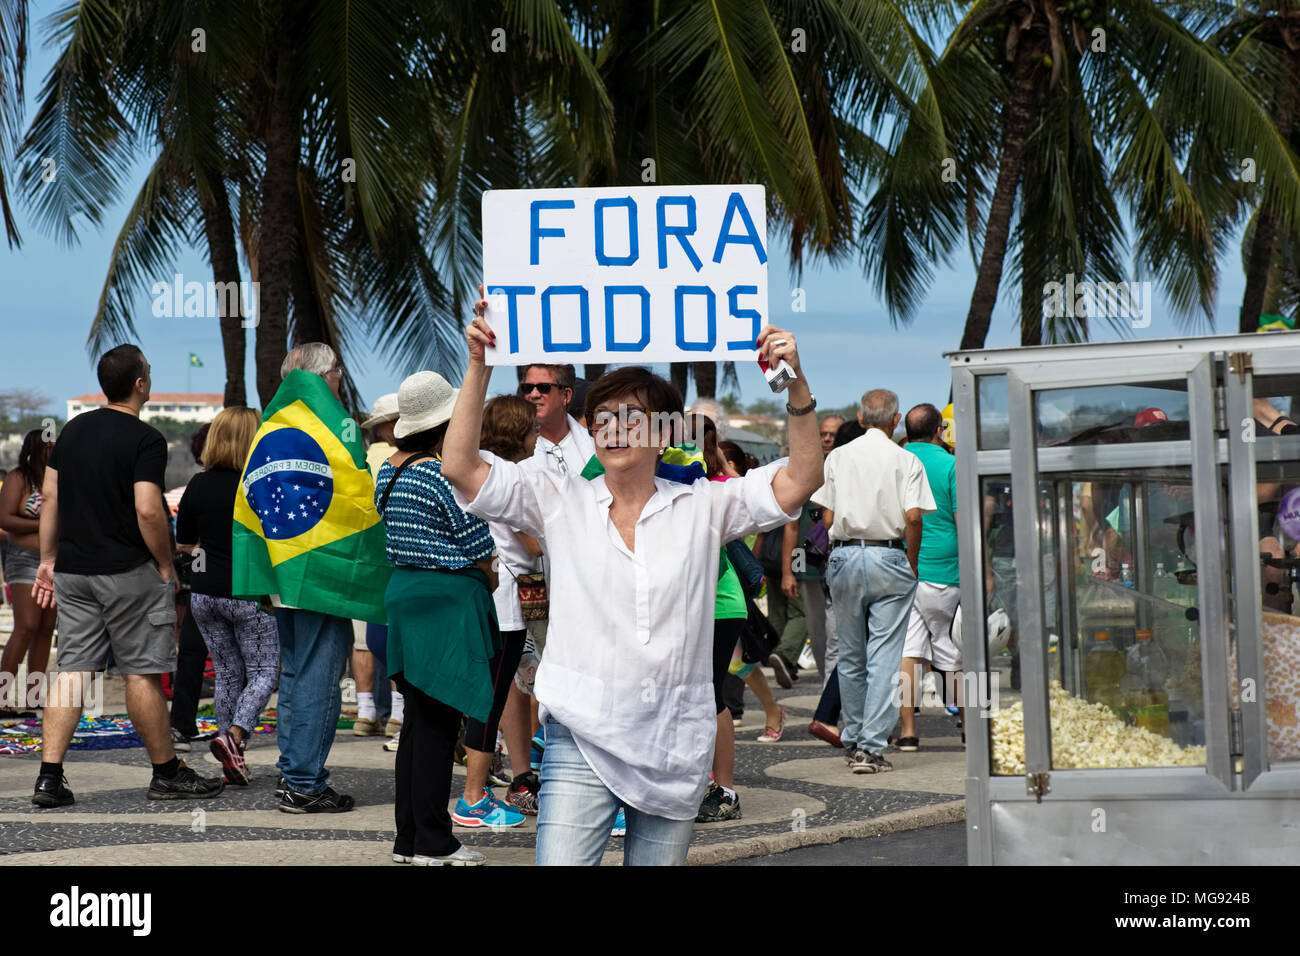 Rio de Janeiro, Brazil - July 31, 2016: A demonstrator displays a banner protesting against the corruption practiced by Brazilian politicians - Stock Image